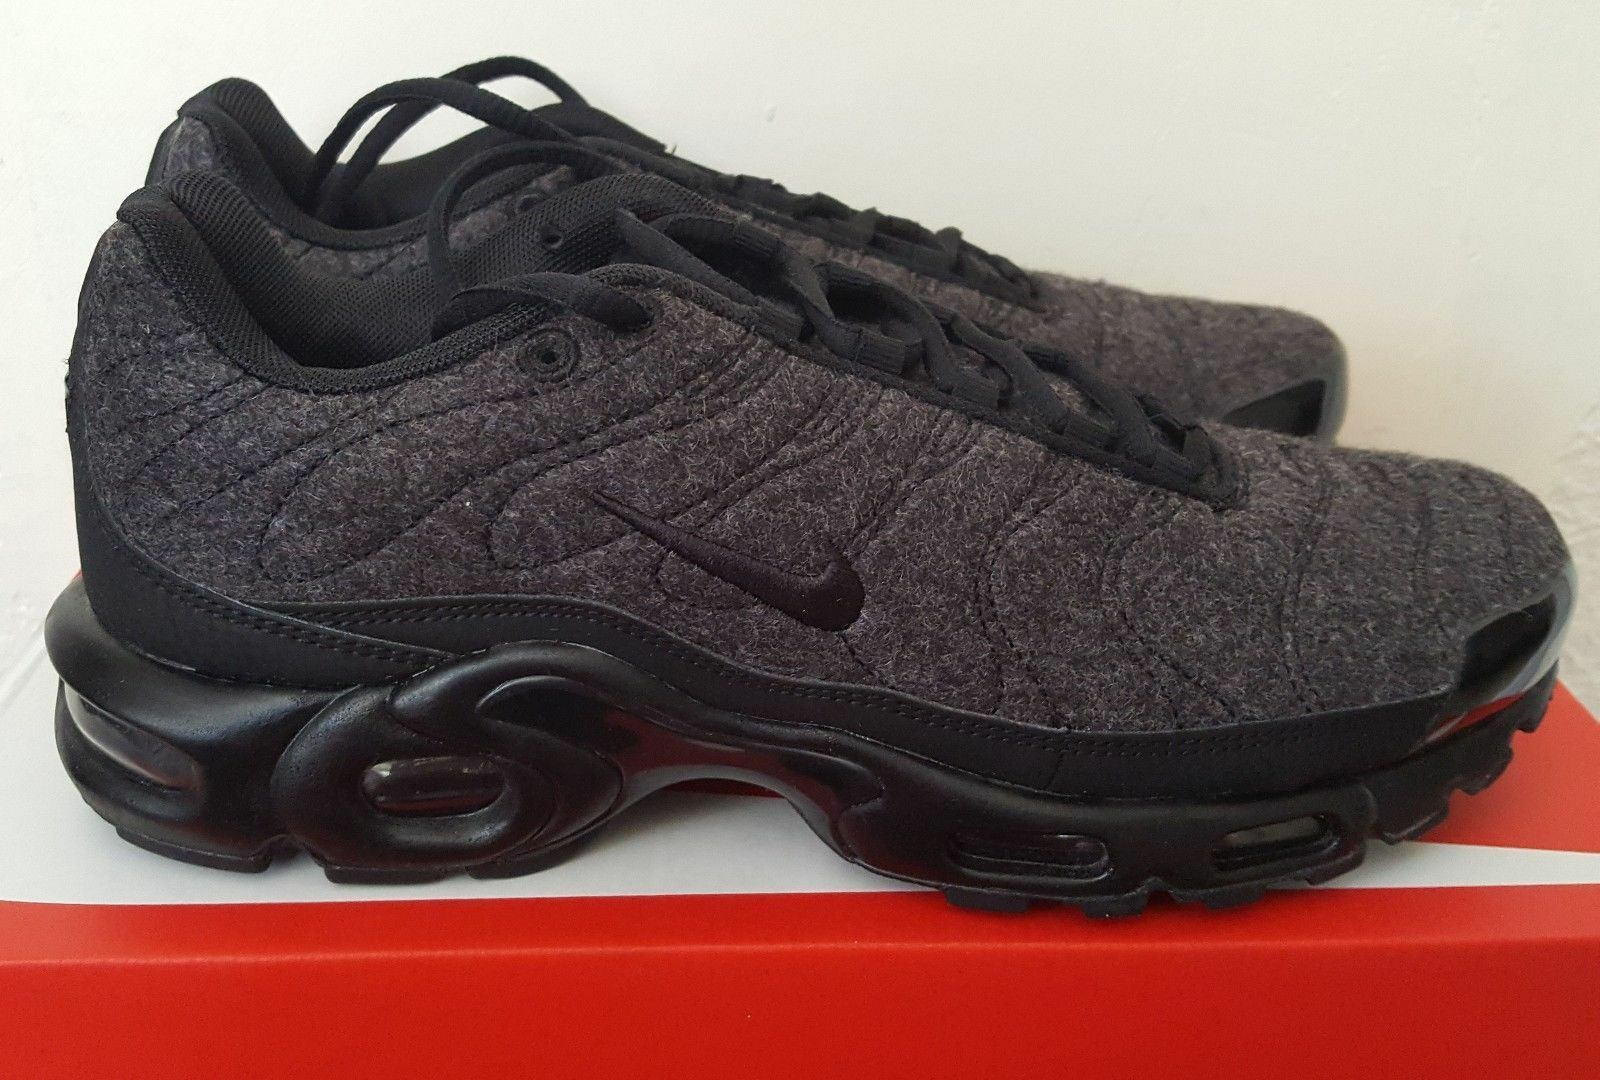 Nike Air Max Plus Quilted Black/Black/Anthracite RARE 806262-022 SIZE 9